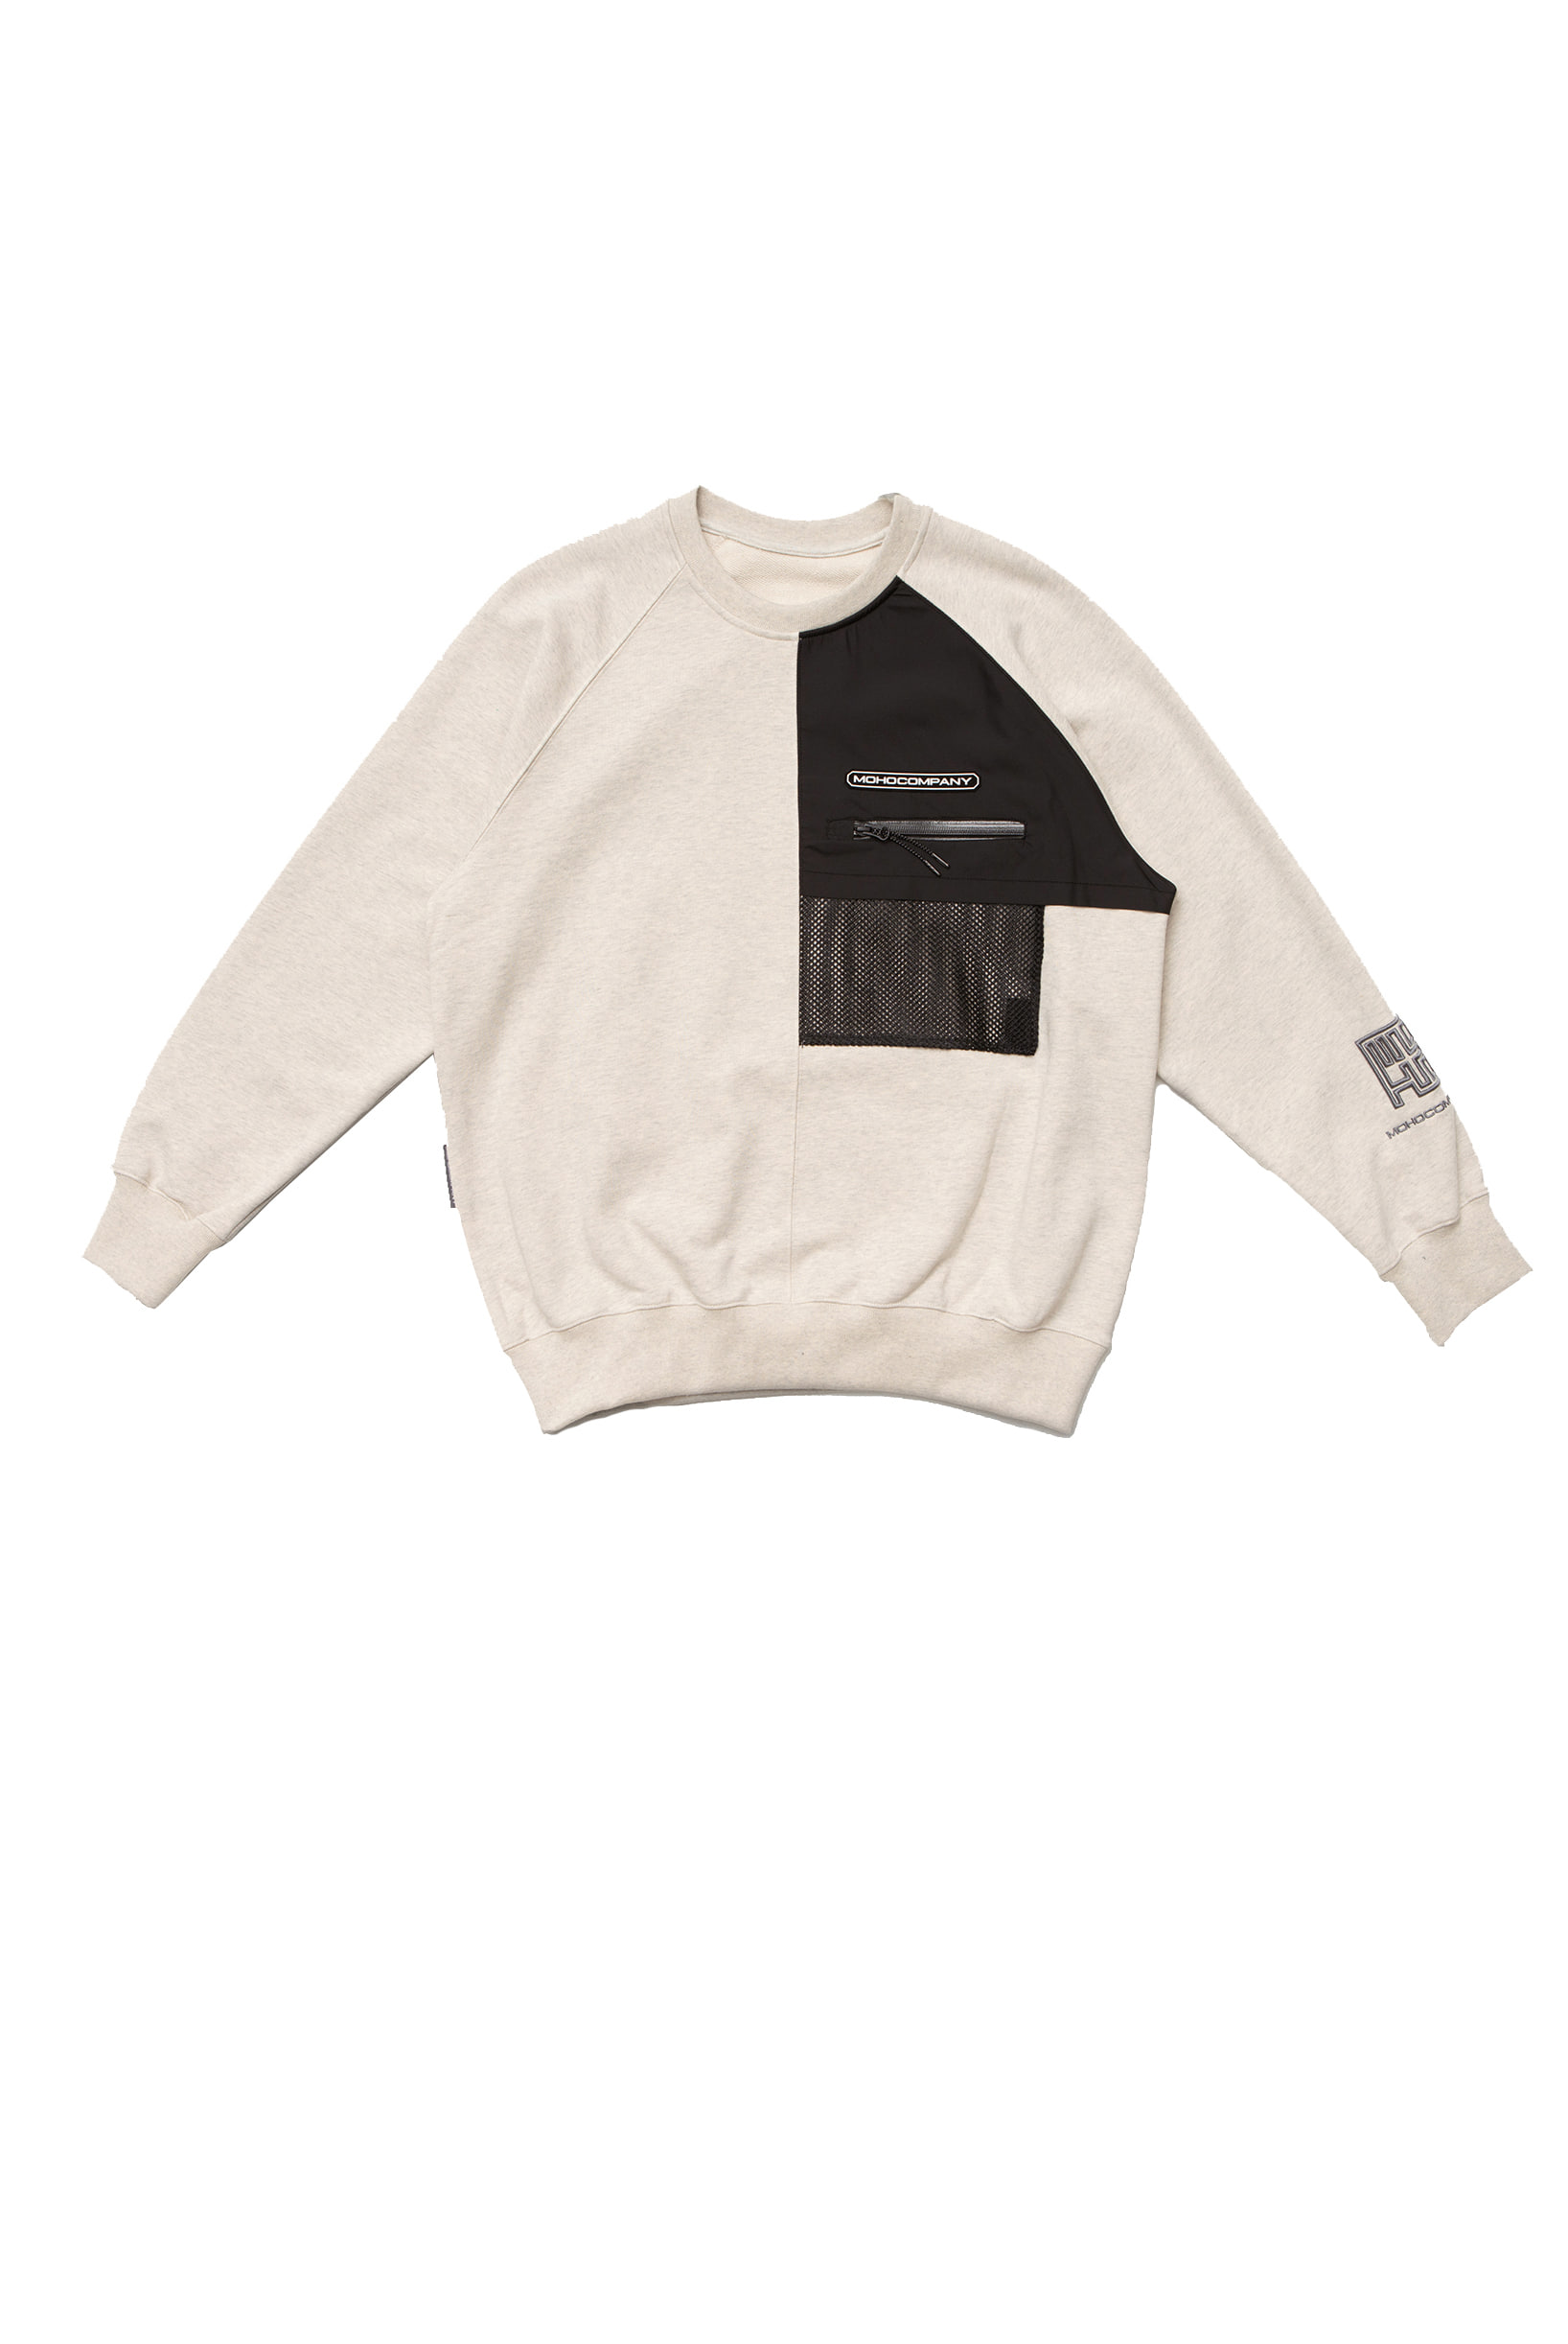 MESH POCKET SWEATSHIRT (OATMEAL)